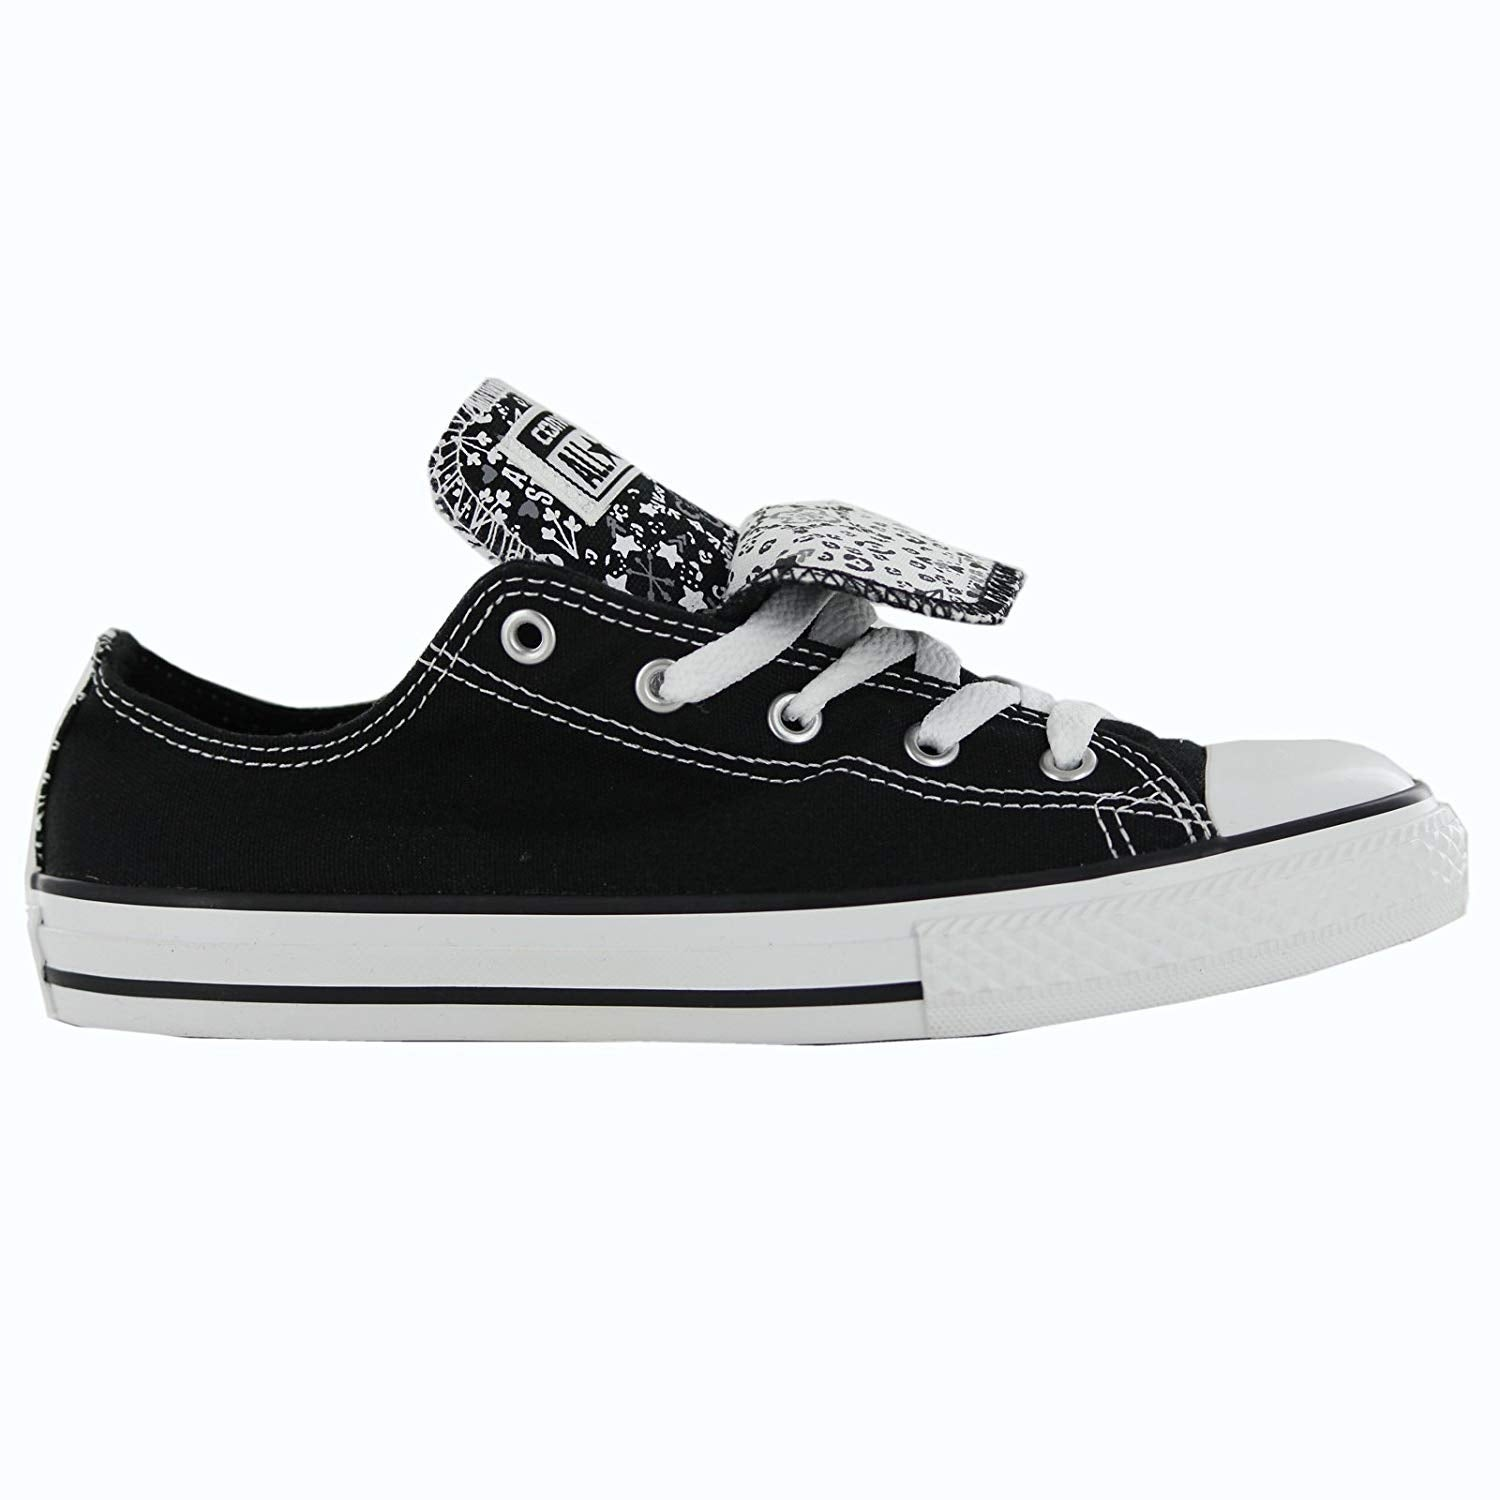 78b5f3e65c4e Shop Kids Converse Girls Chuck Taylor All Star Double Tongue Canvas Low Top  Lace U... - 4 m us - Free Shipping On Orders Over  45 - Overstock.com -  25980528